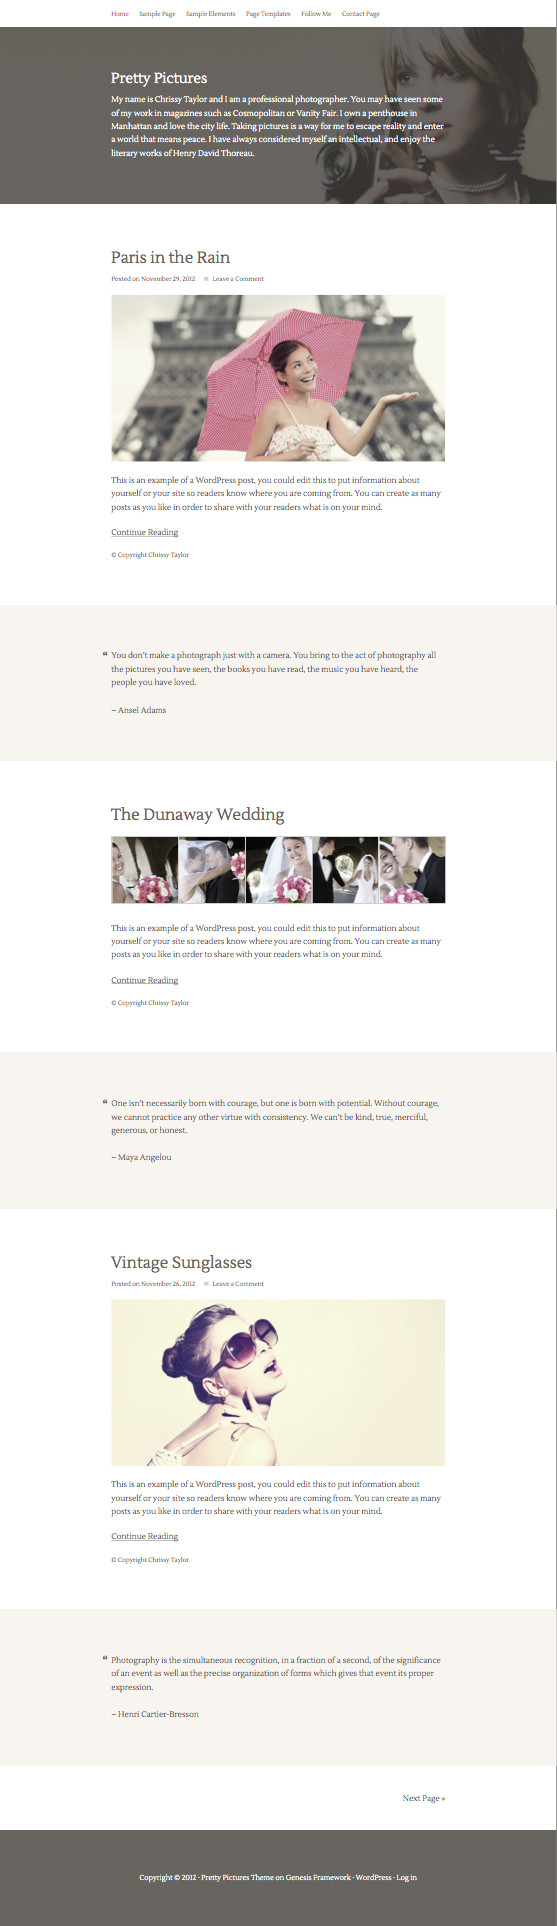 Pretty Pictures WordPress Photographic Theme